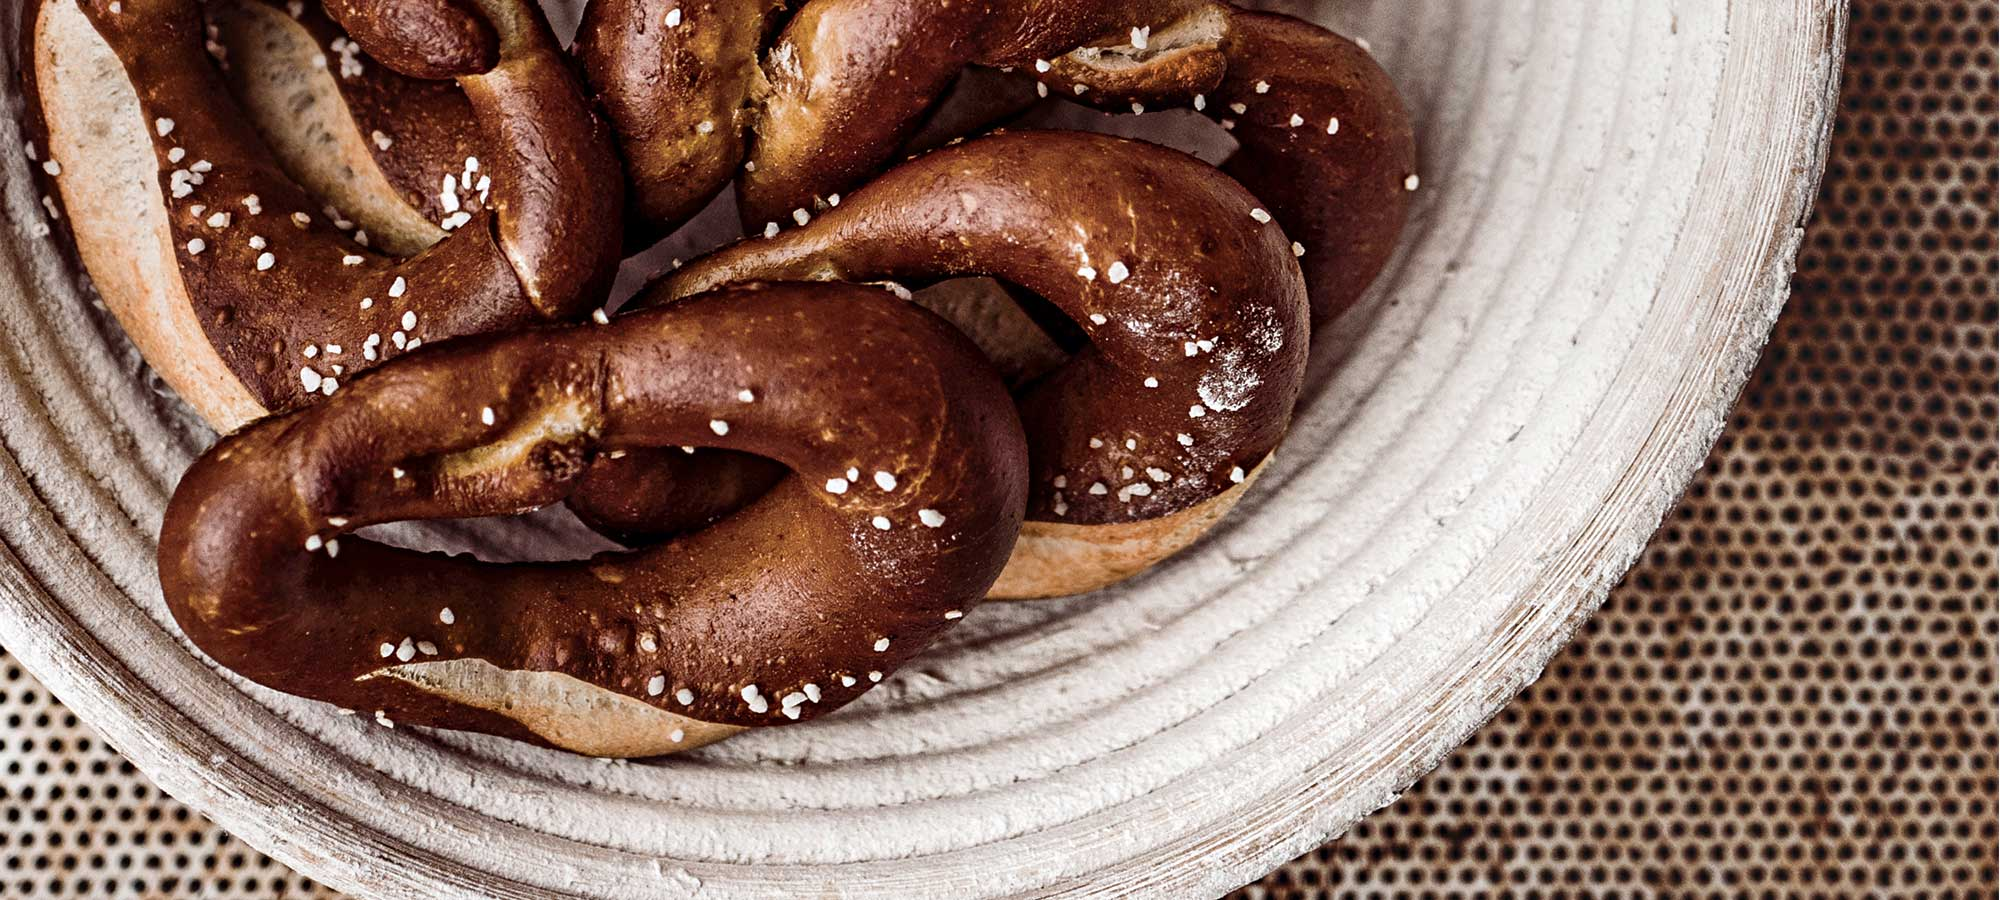 This German Baker Makes What May Be The World's Best Pretzel